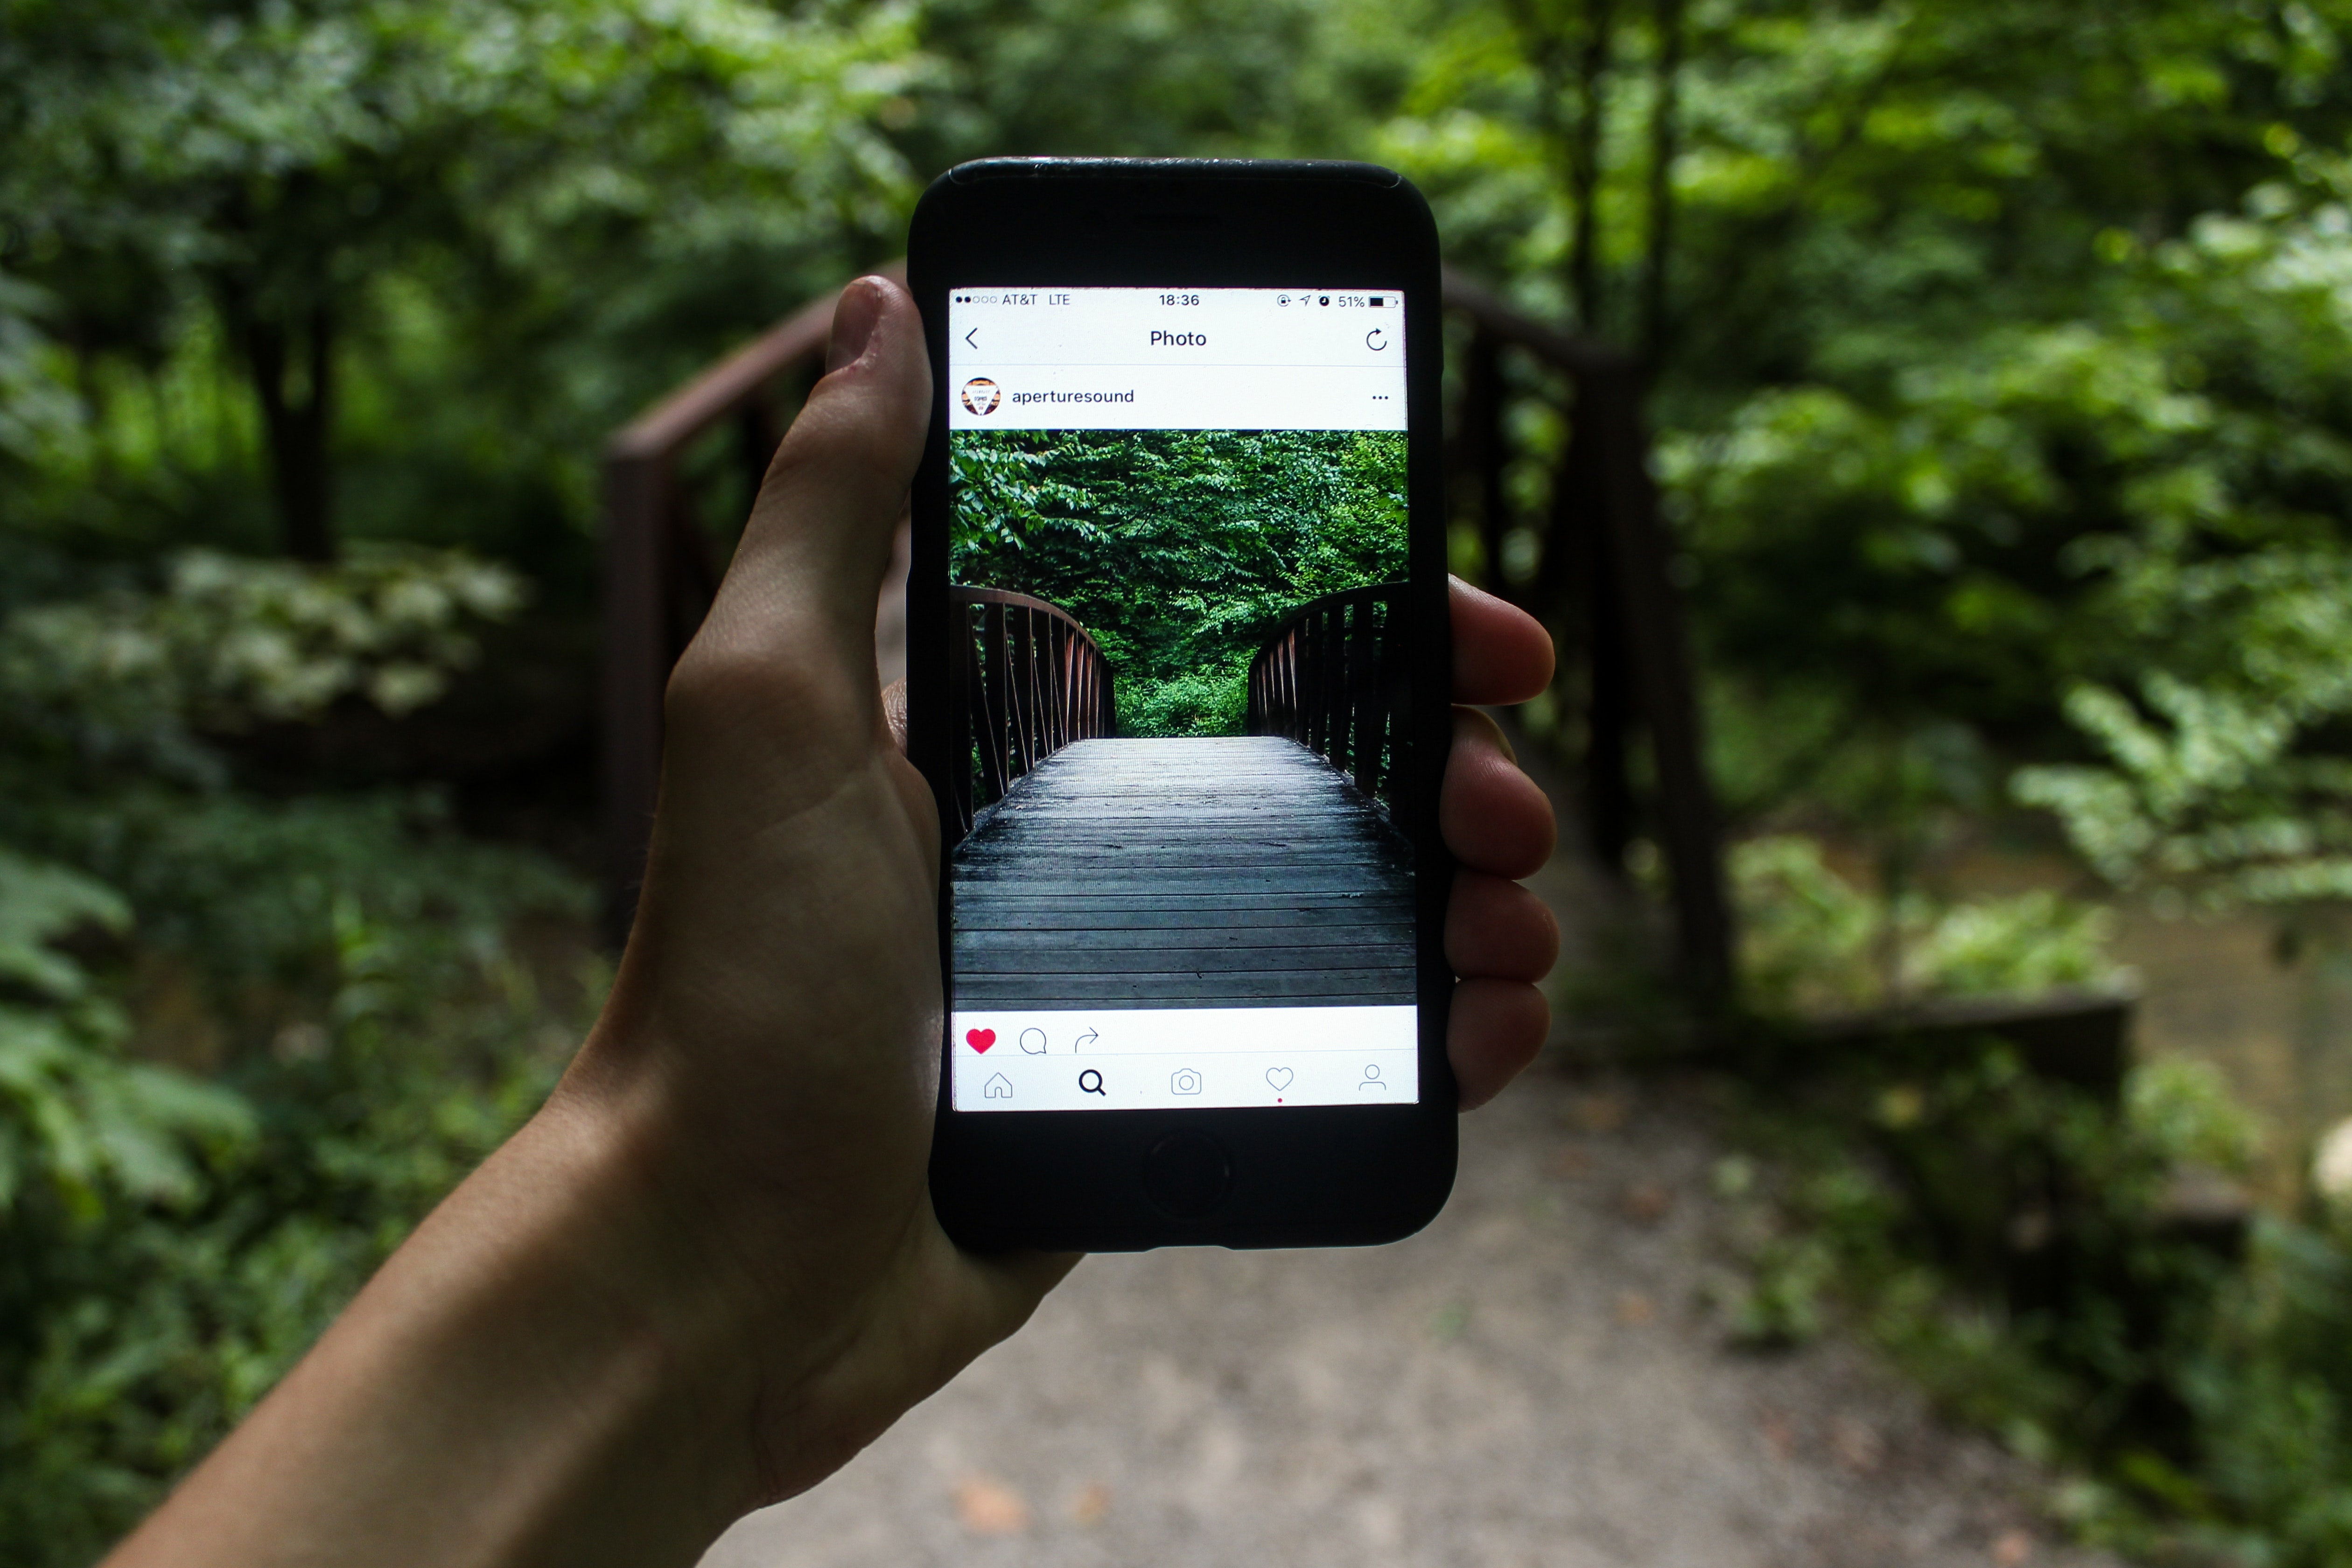 Person Holding Smartphone Taking Picture of Bridge during Daytime, App, Bridge, Gadget, Hand, HQ Photo